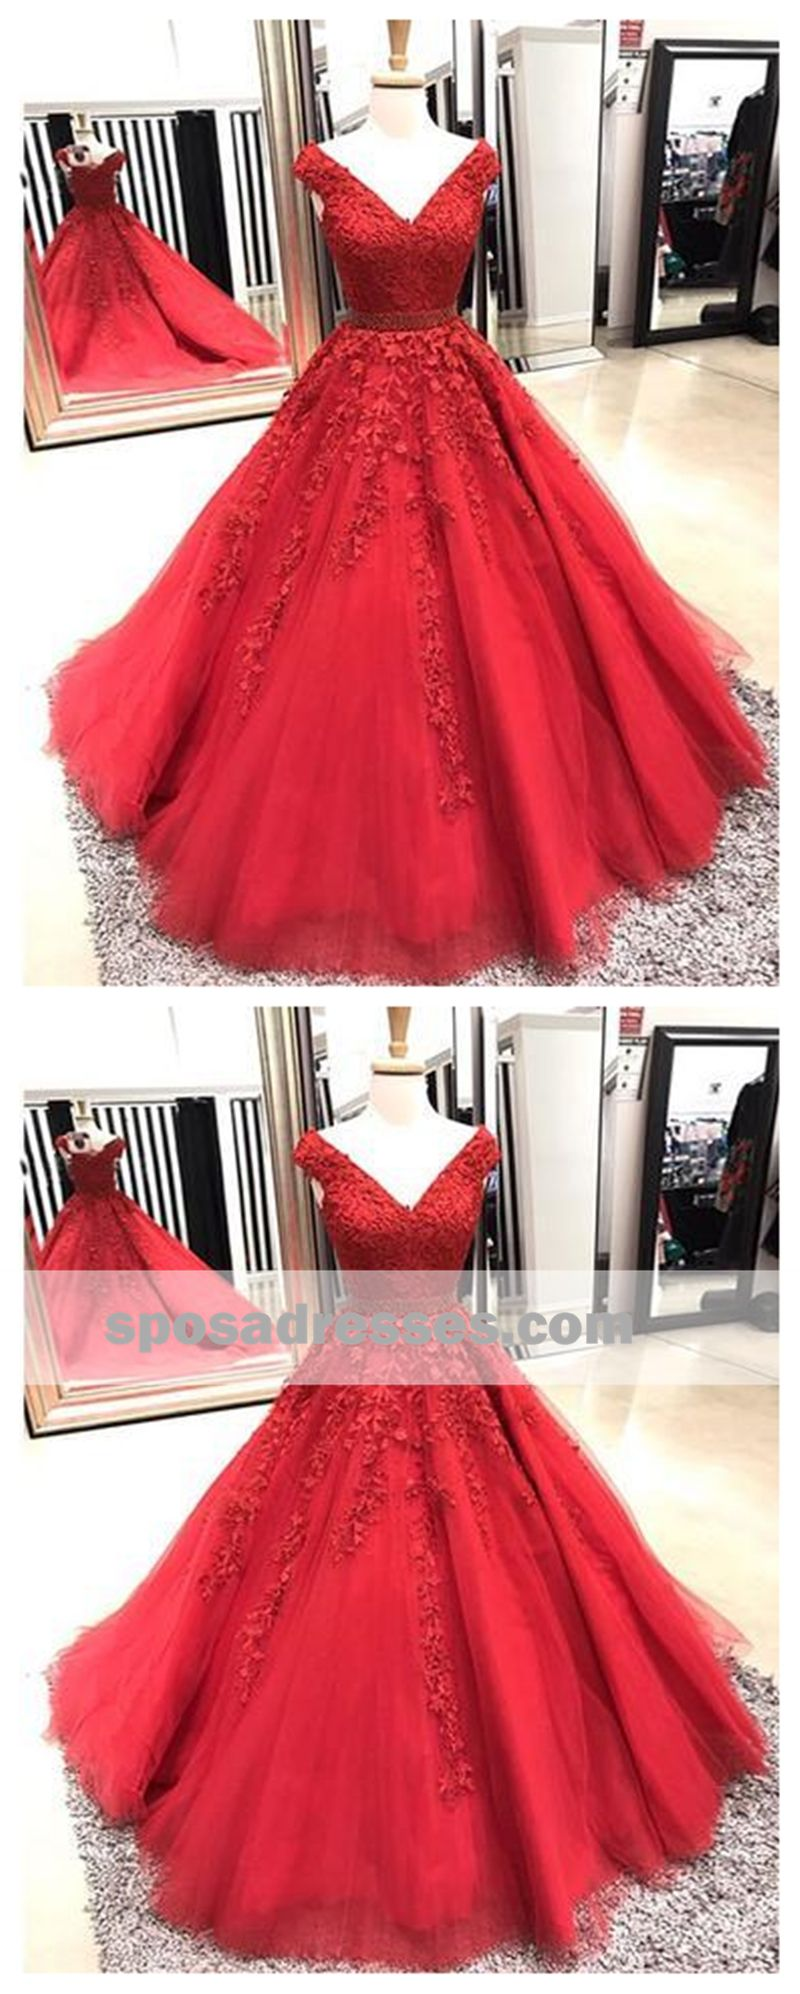 Off shoulder red aline lace custom long evening prom dresses